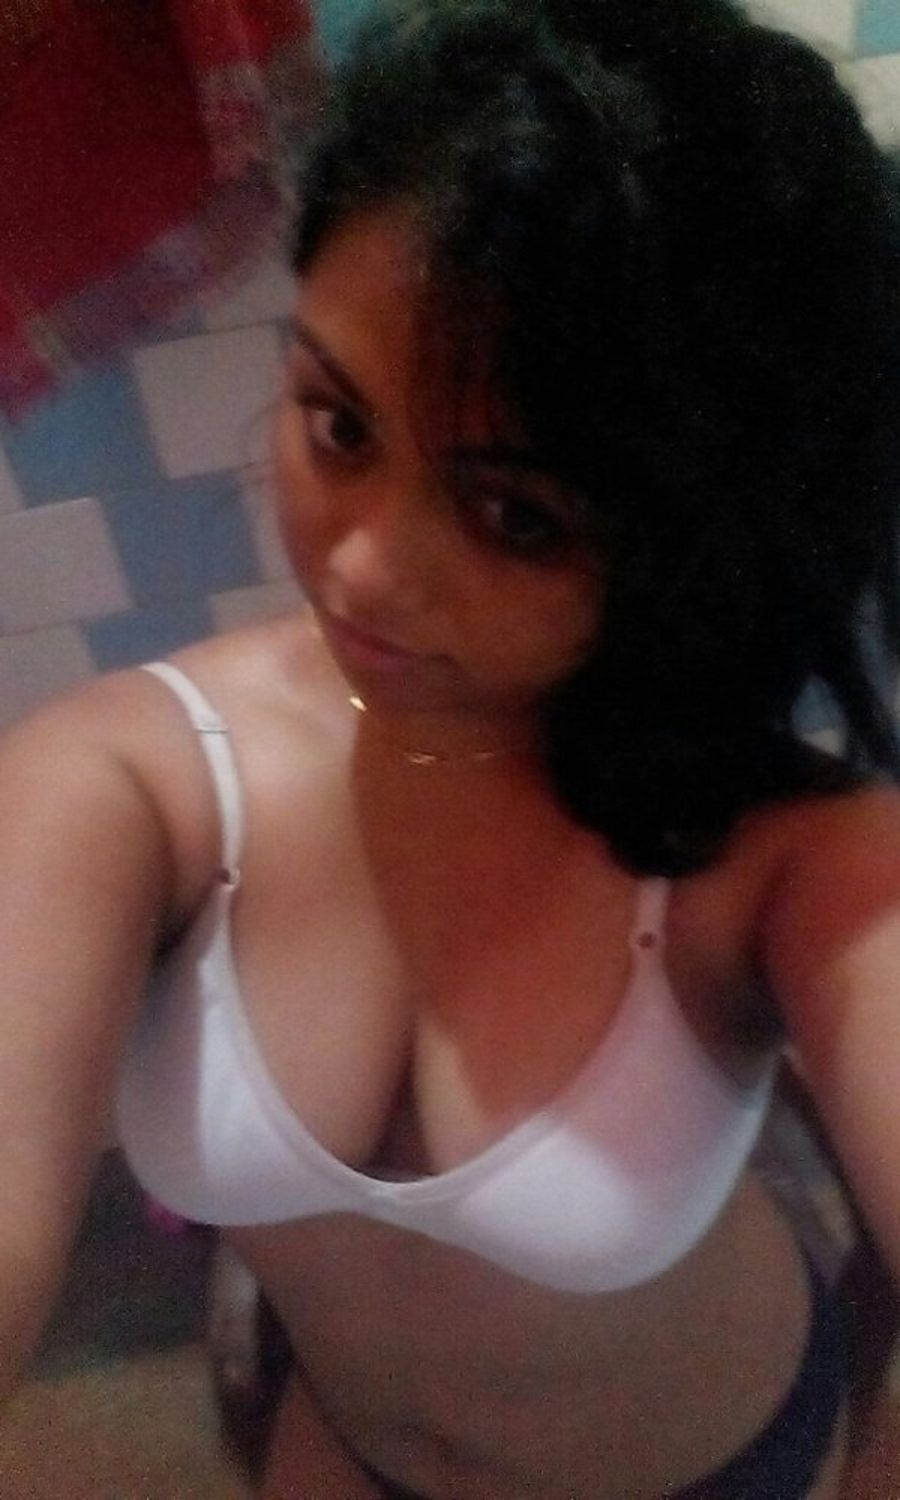 Desi Hot College Girl Some Selfies New Pic - Female Mms -4285